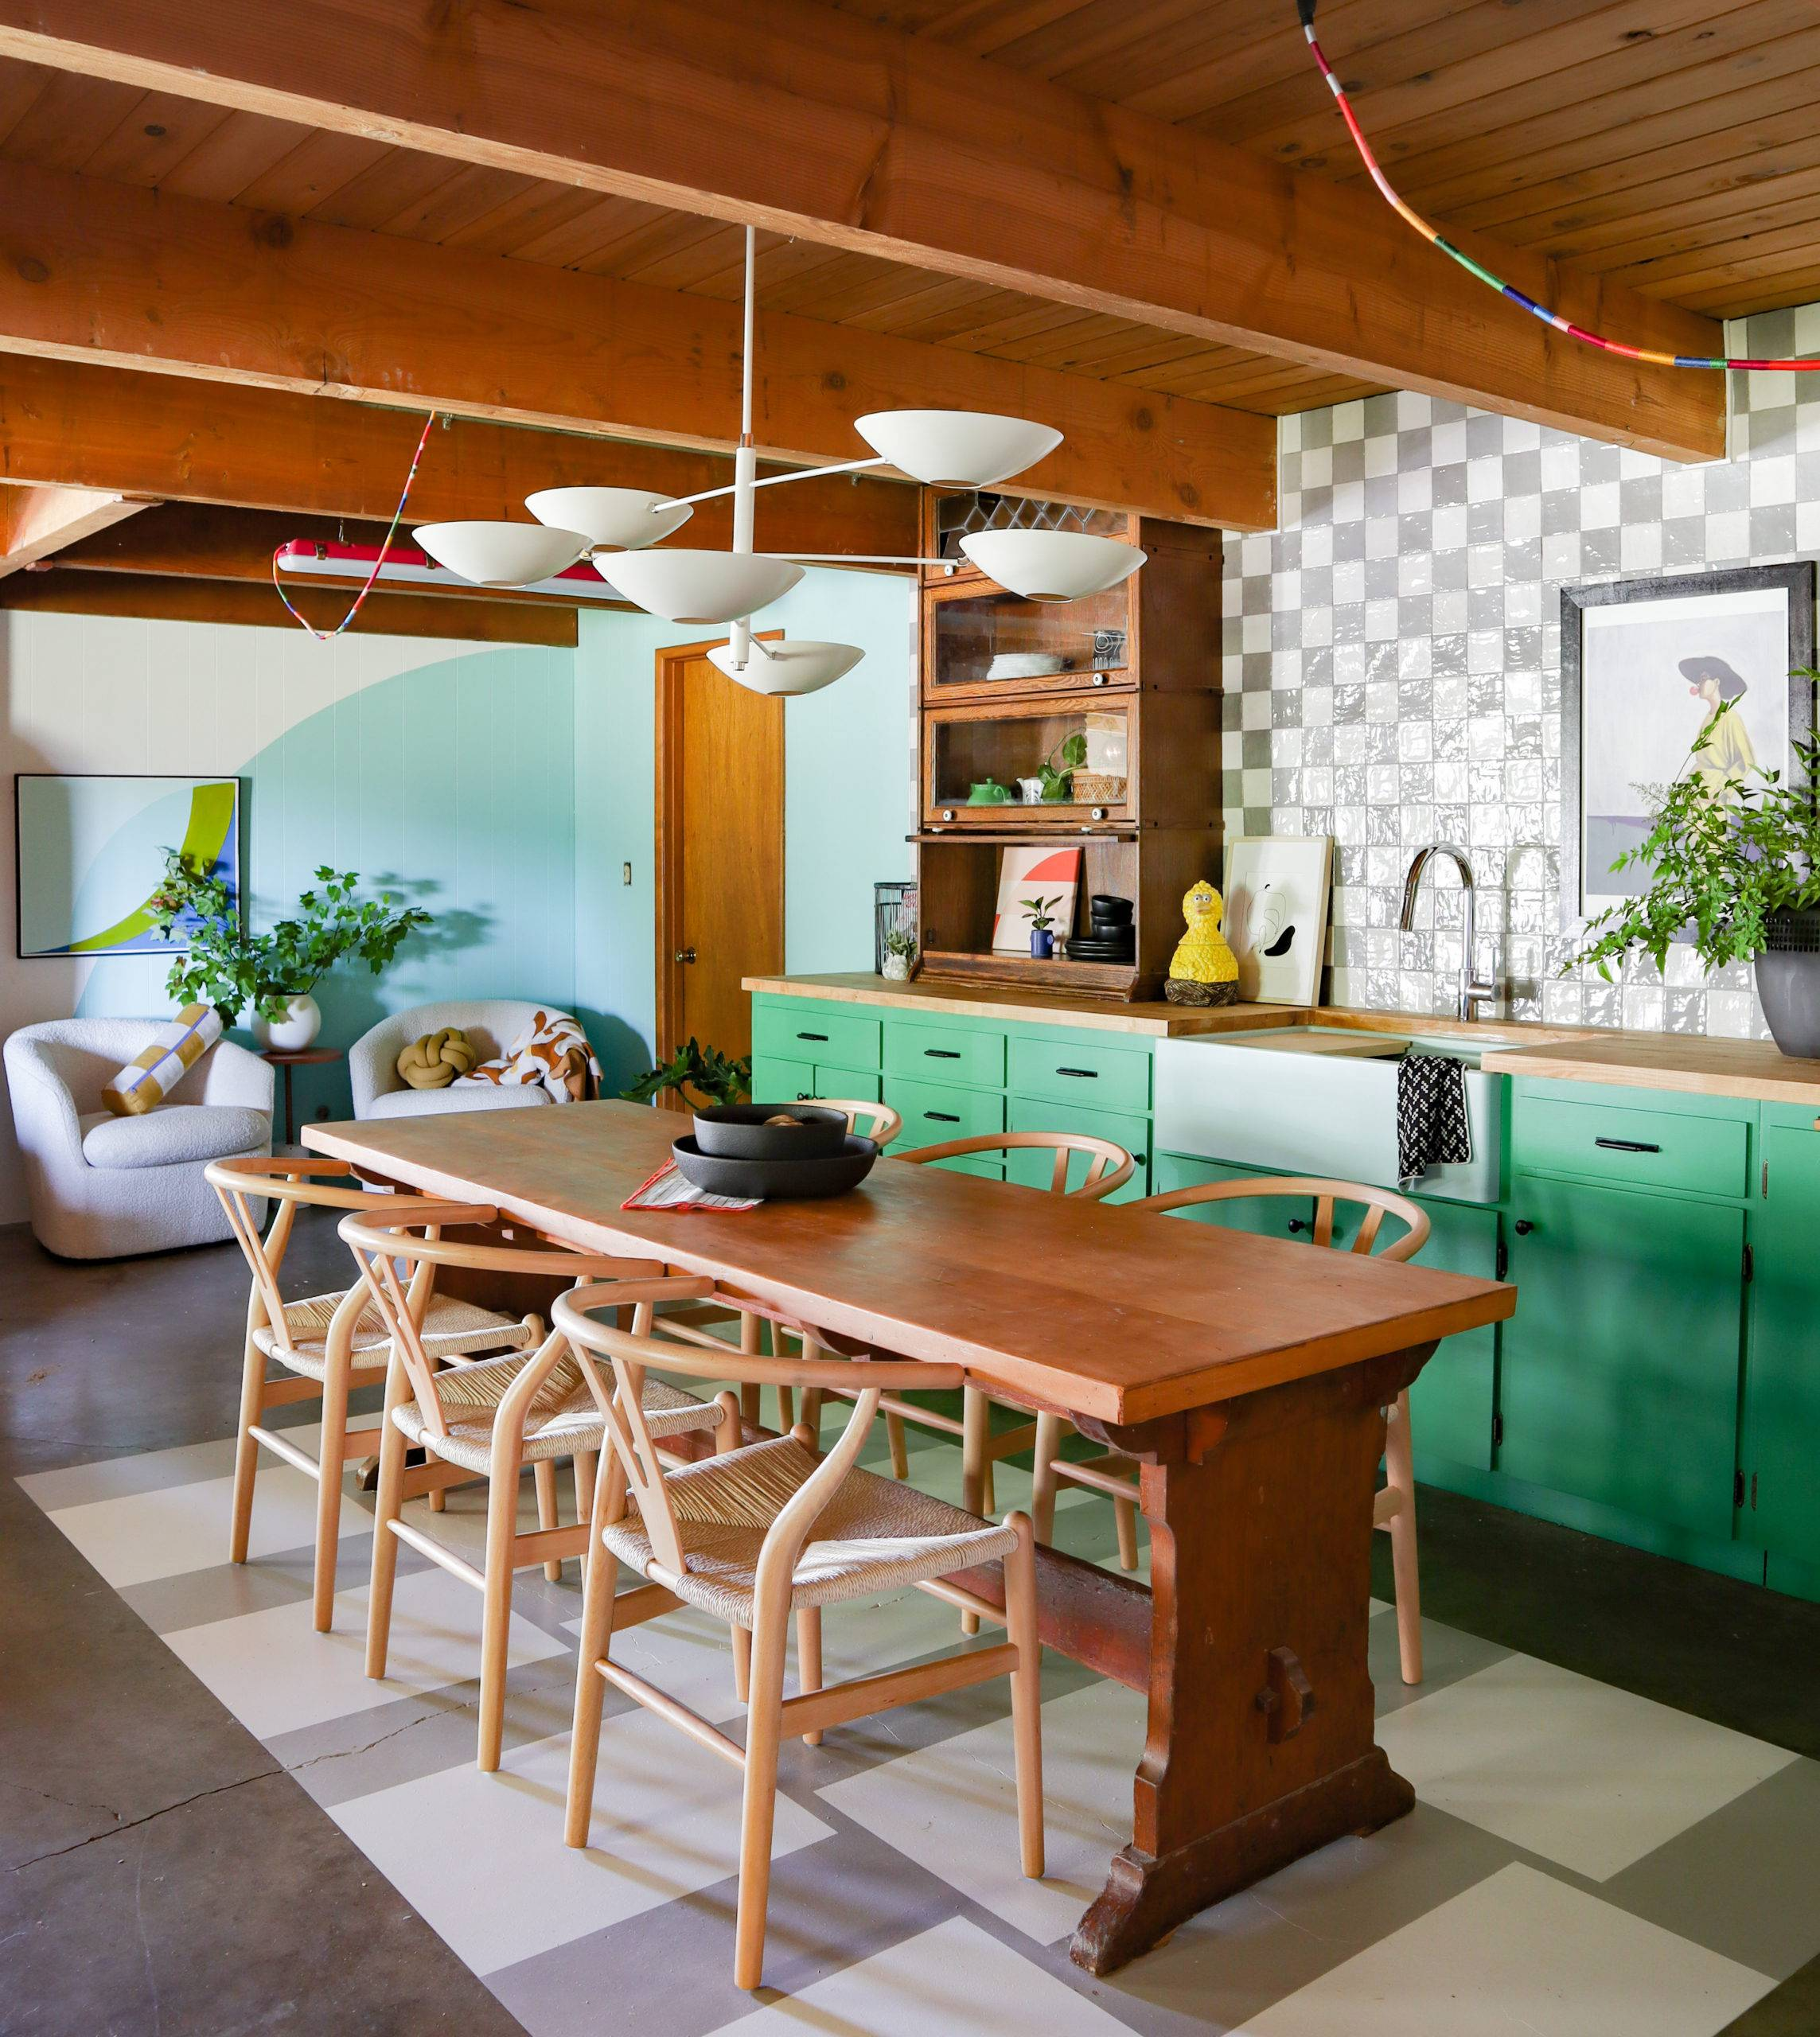 colorful kitchen with checkerboard tiled backsplash and wooden dining set